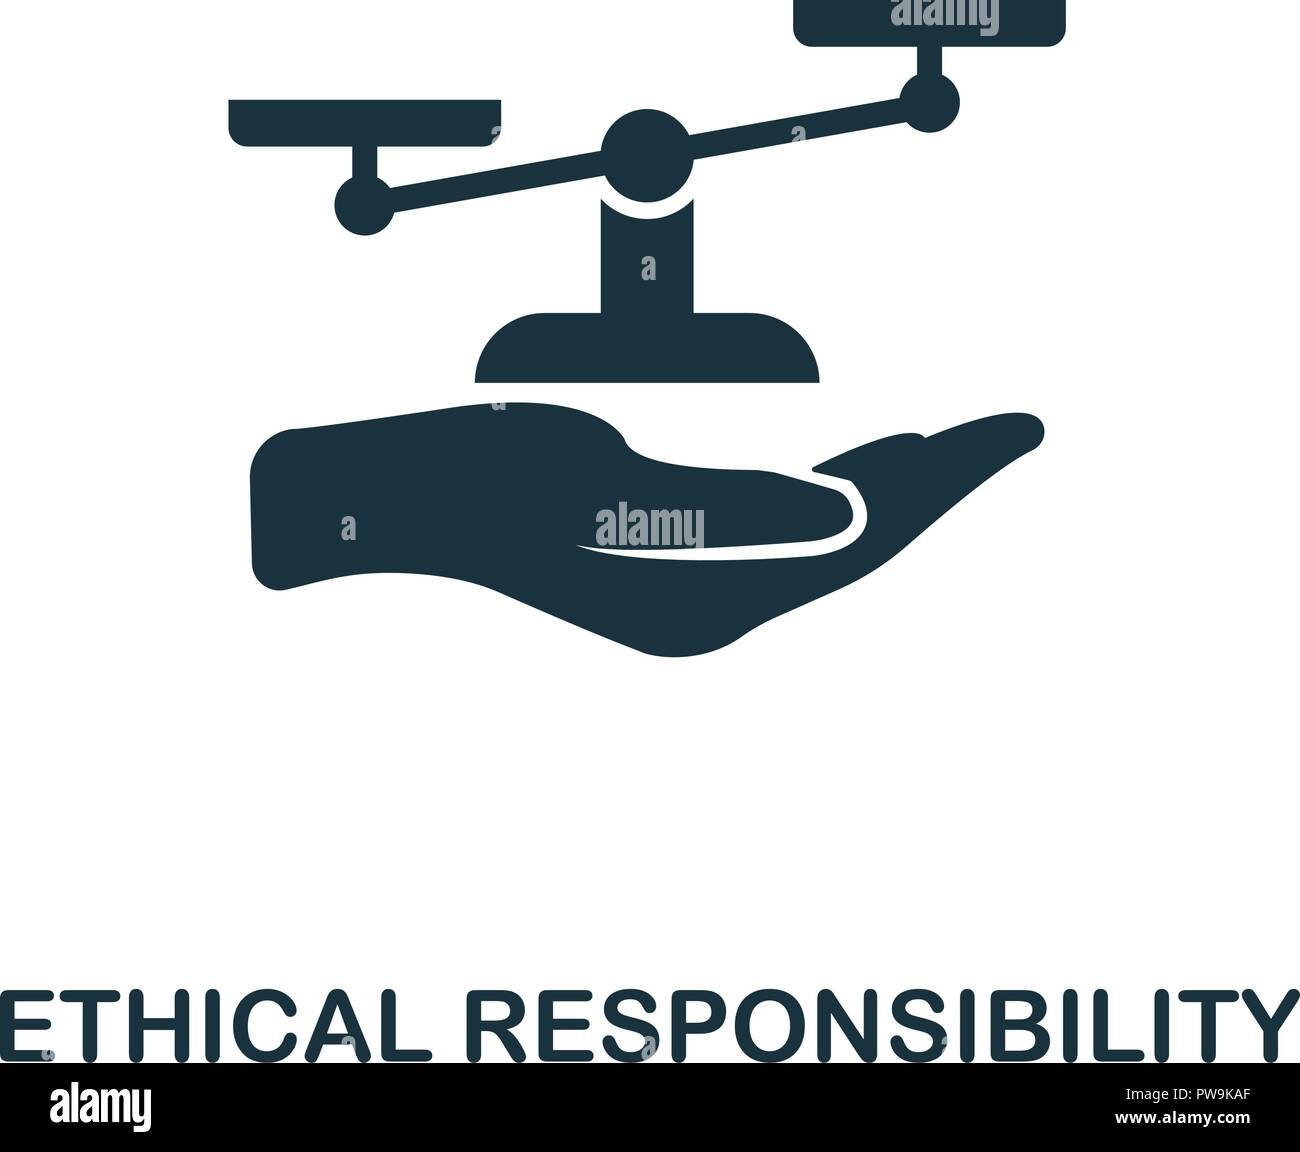 Ethical Responsibility icon. Monochrome style design from business ethics icon collection. UI and UX. Pixel perfect ethical responsibility icon. For web design, apps, software, print usage. - Stock Image